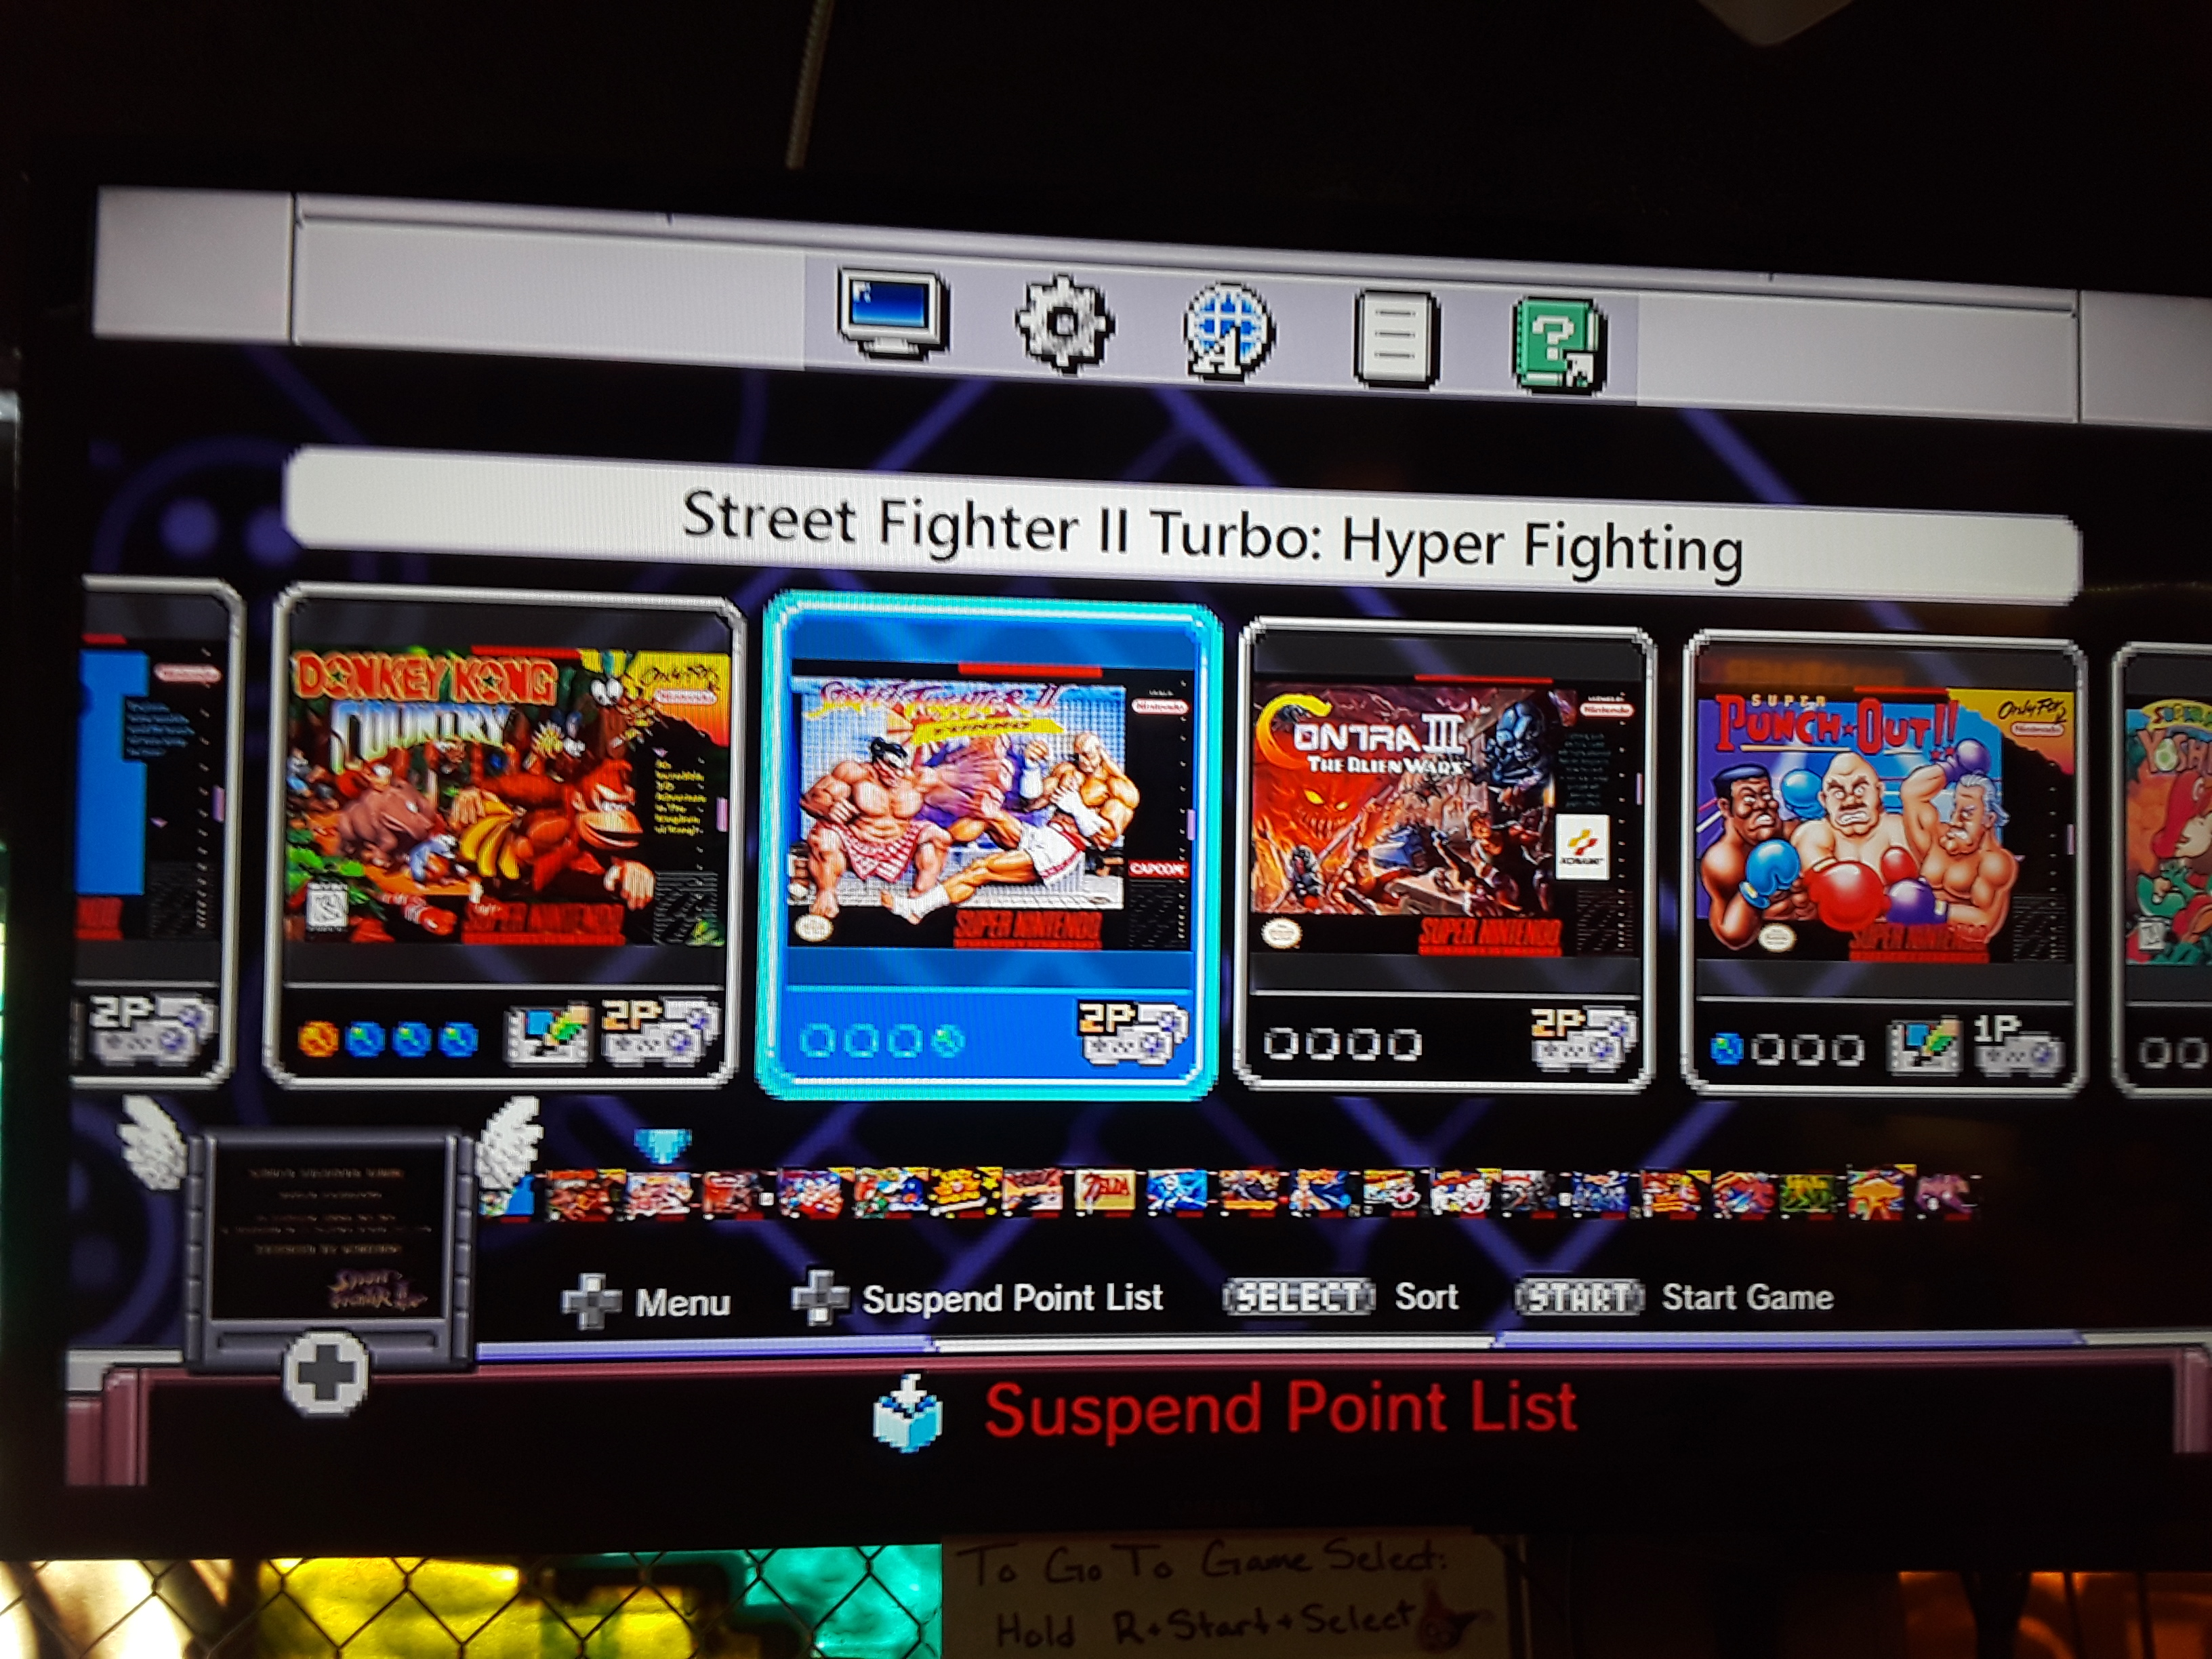 Street Fighter II Turbo: Hyper Fighting [Turbo / Difficulty 1] 62,000 points